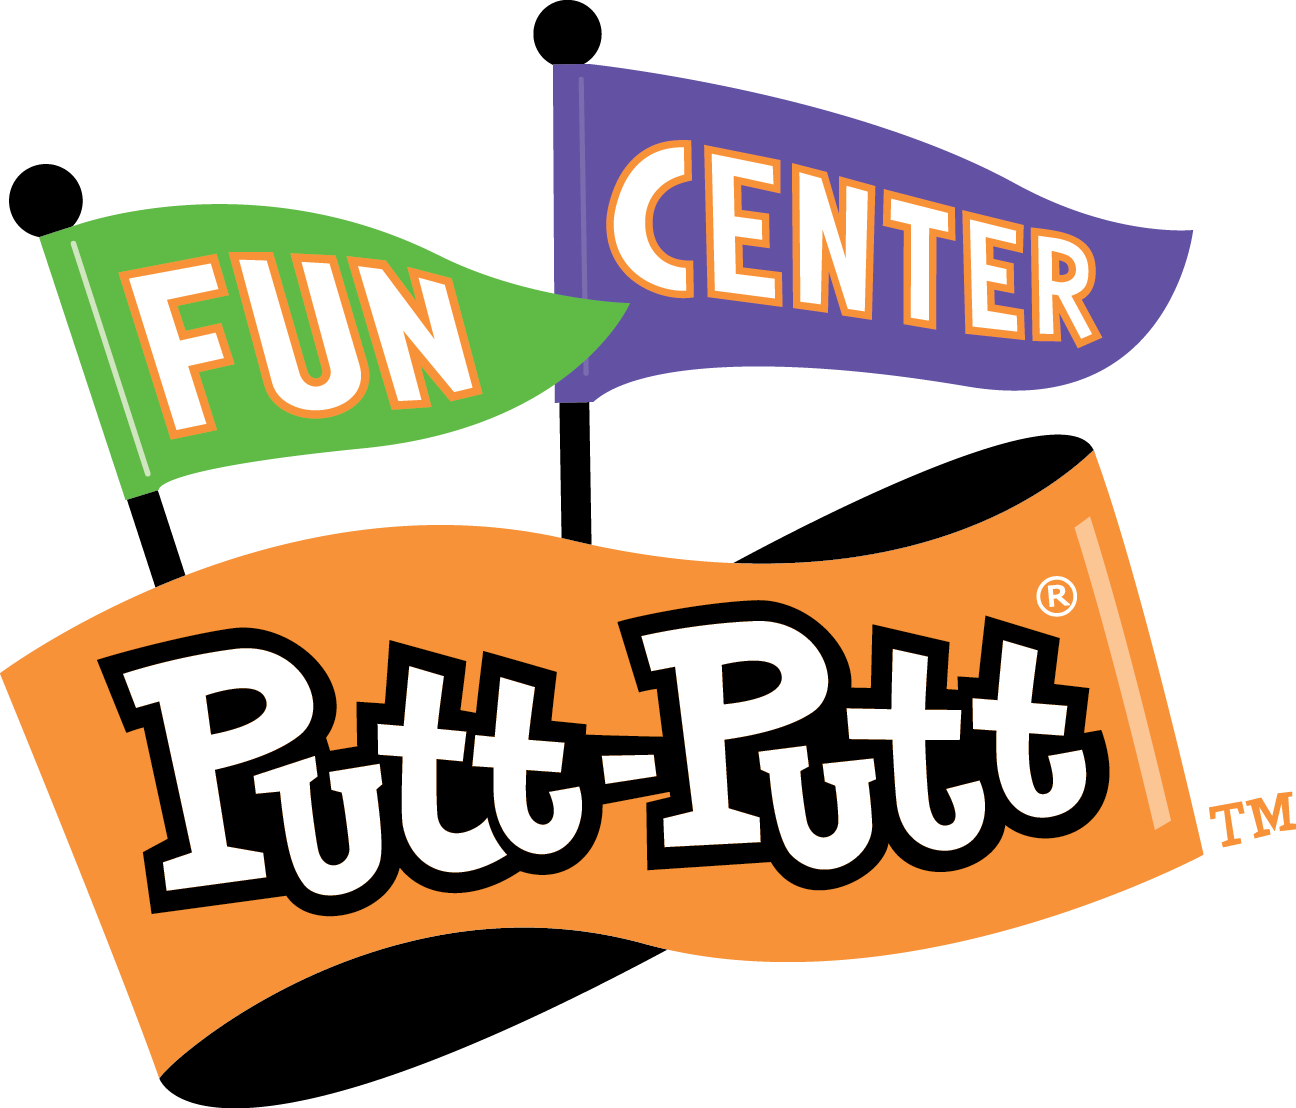 Golfing clipart putt putt. Golf and games in